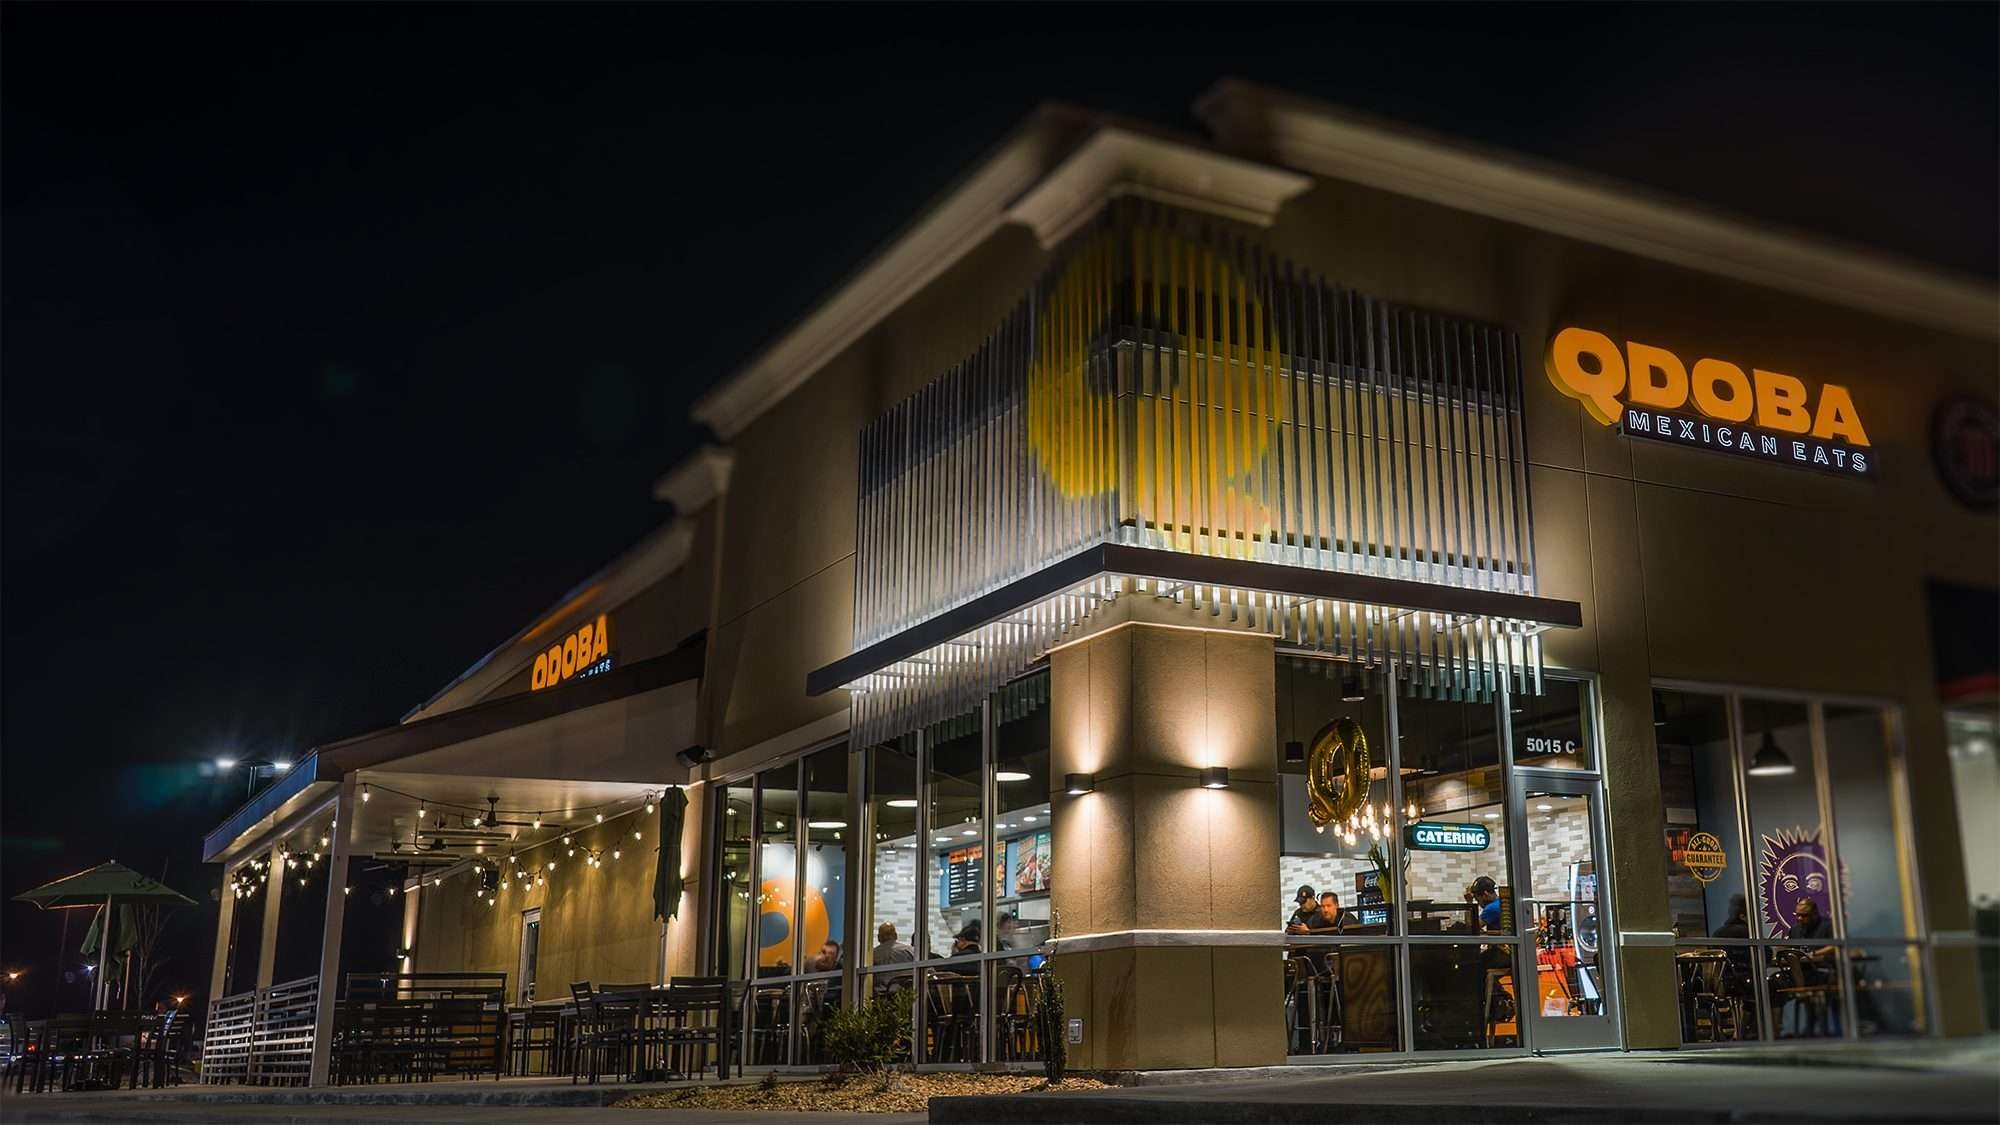 03.12.2018 - Qdoba Mexican Eats opening night Paducah, KY/photonews247.com